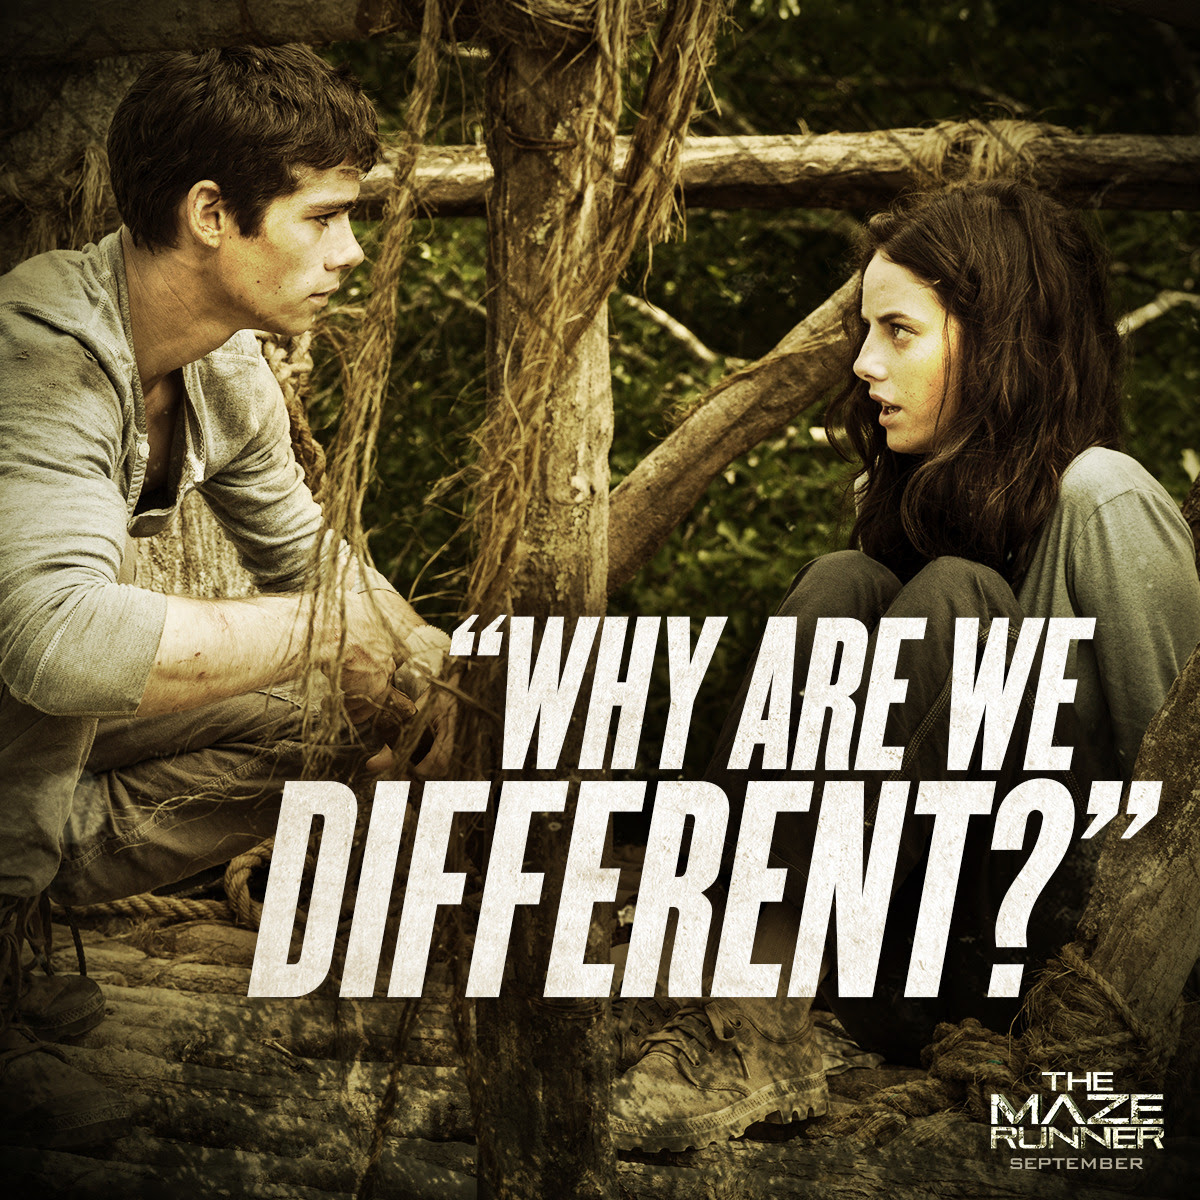 mazerunnermovie:  The answer is hidden in the things they can't remember.